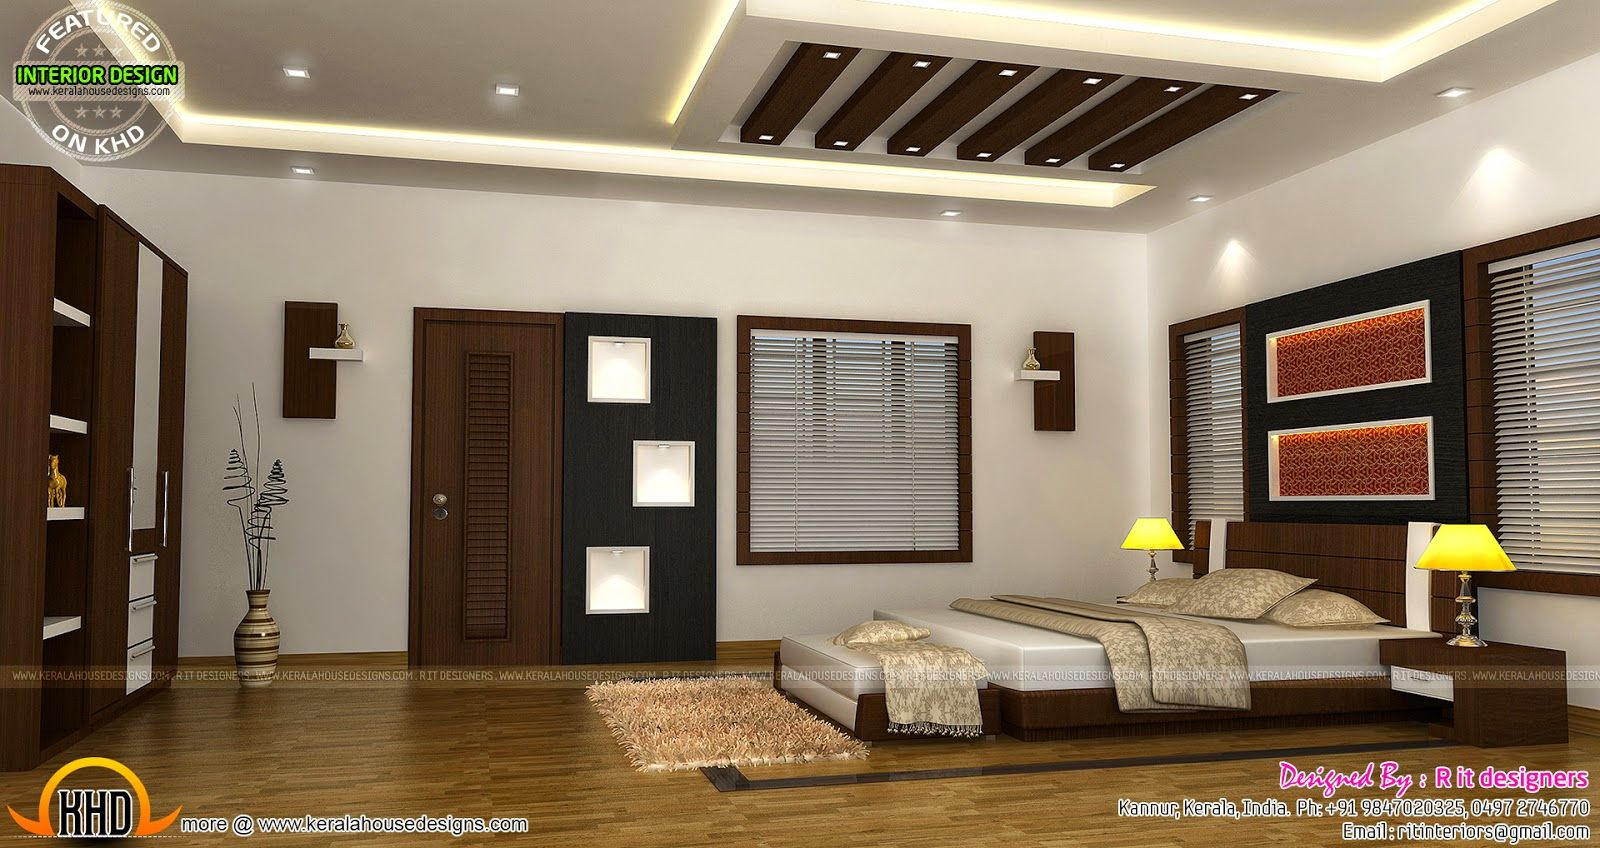 Bedroom Interior Design With Cost Kerala Home Design And Master Bedroom Interior Design Interior Design Bedroom Interior Design Classes